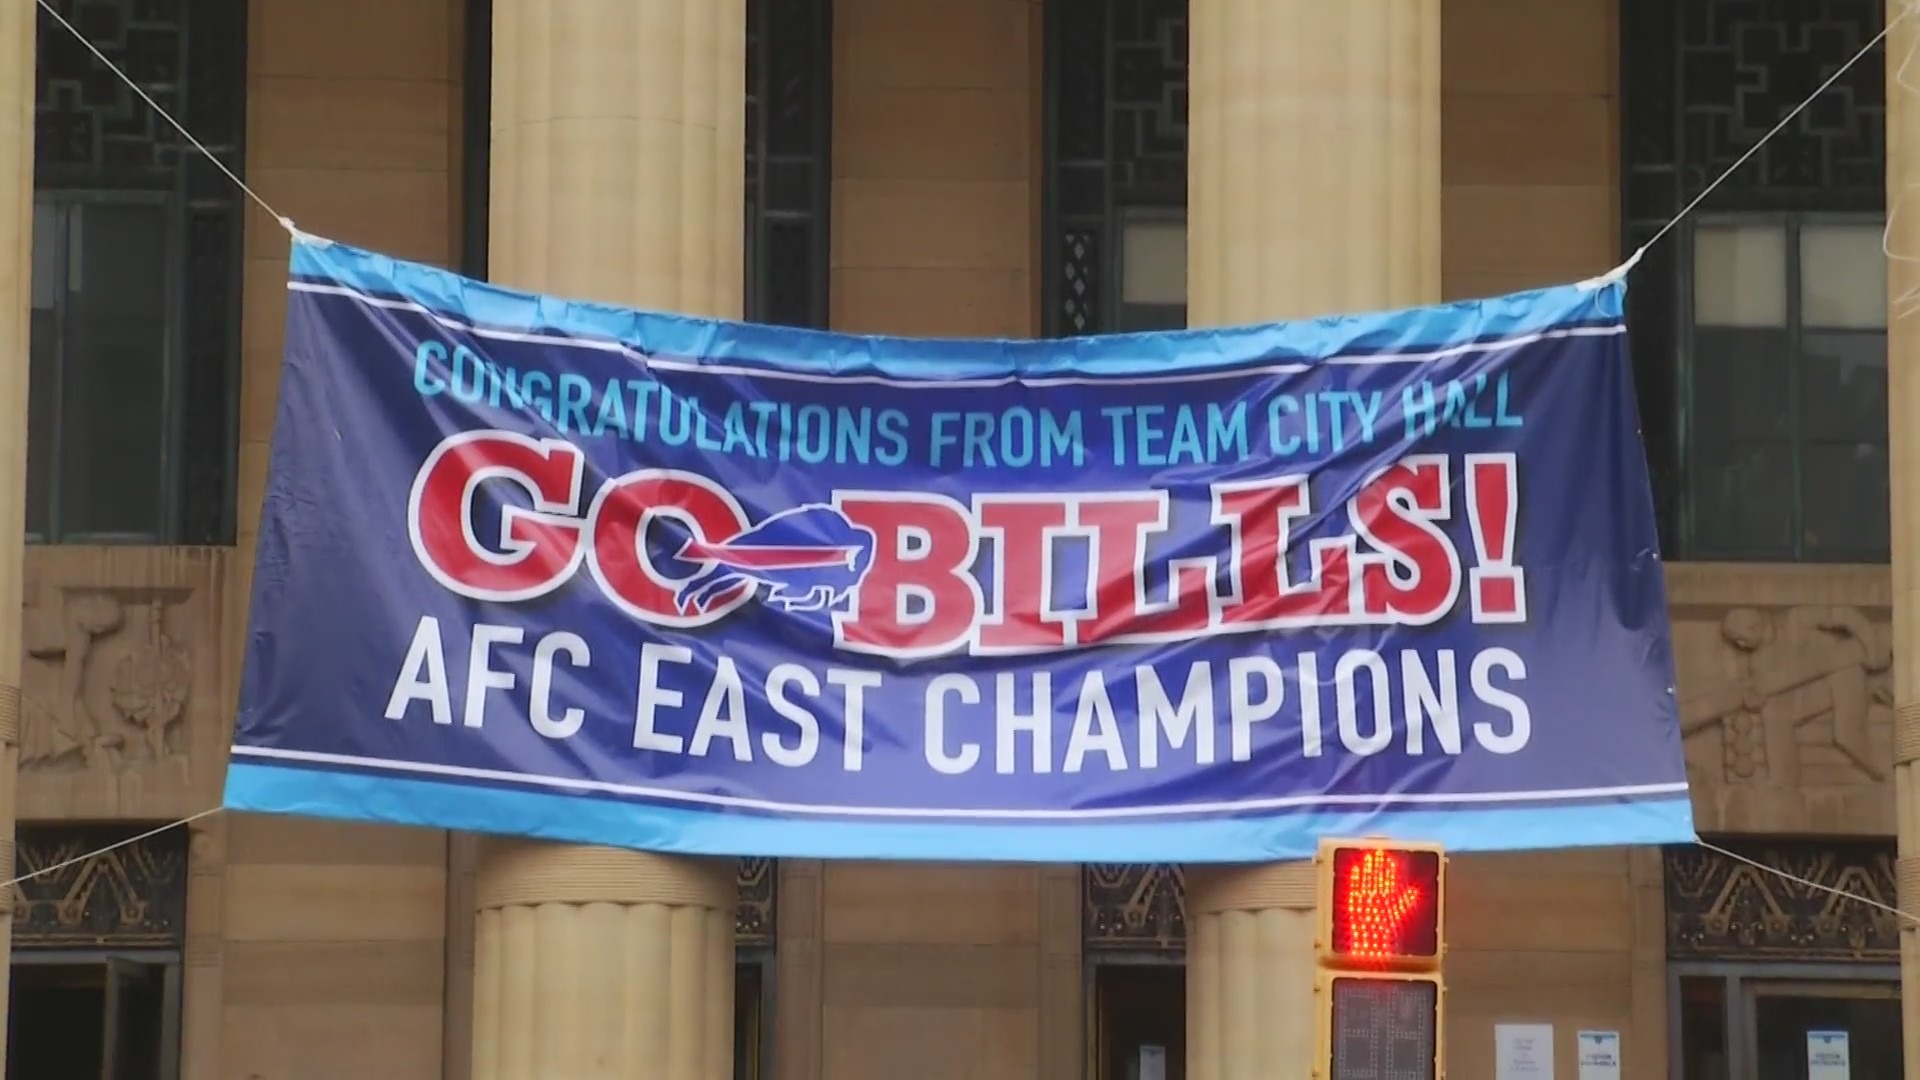 WATCH: Bills arrive at Buffalo Airport after clinching AFC East title |  News 4 Buffalo